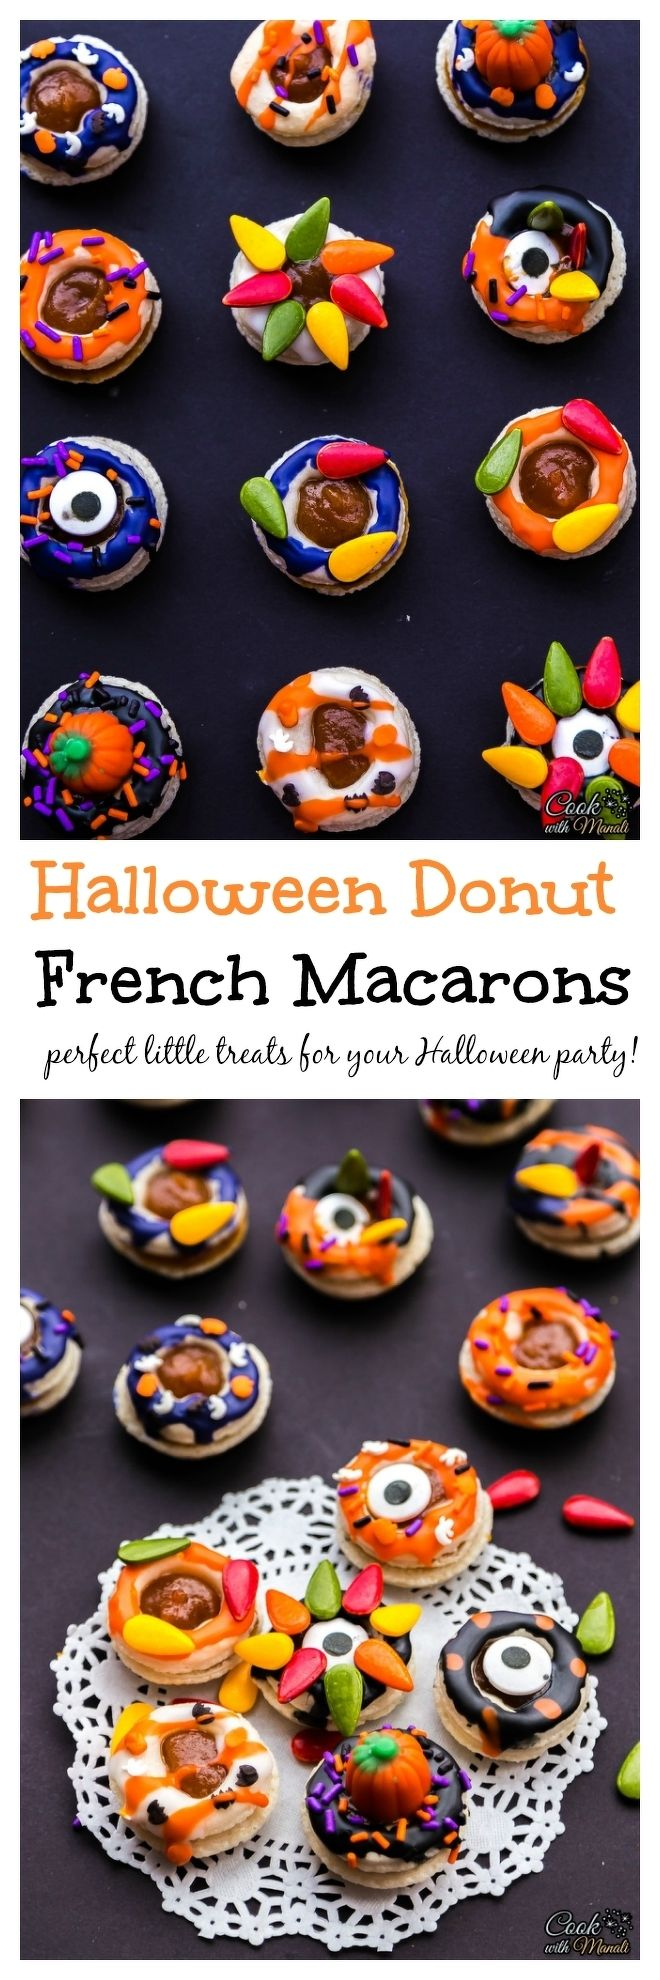 Halloween-Donut-Macarons Collage-nocwm